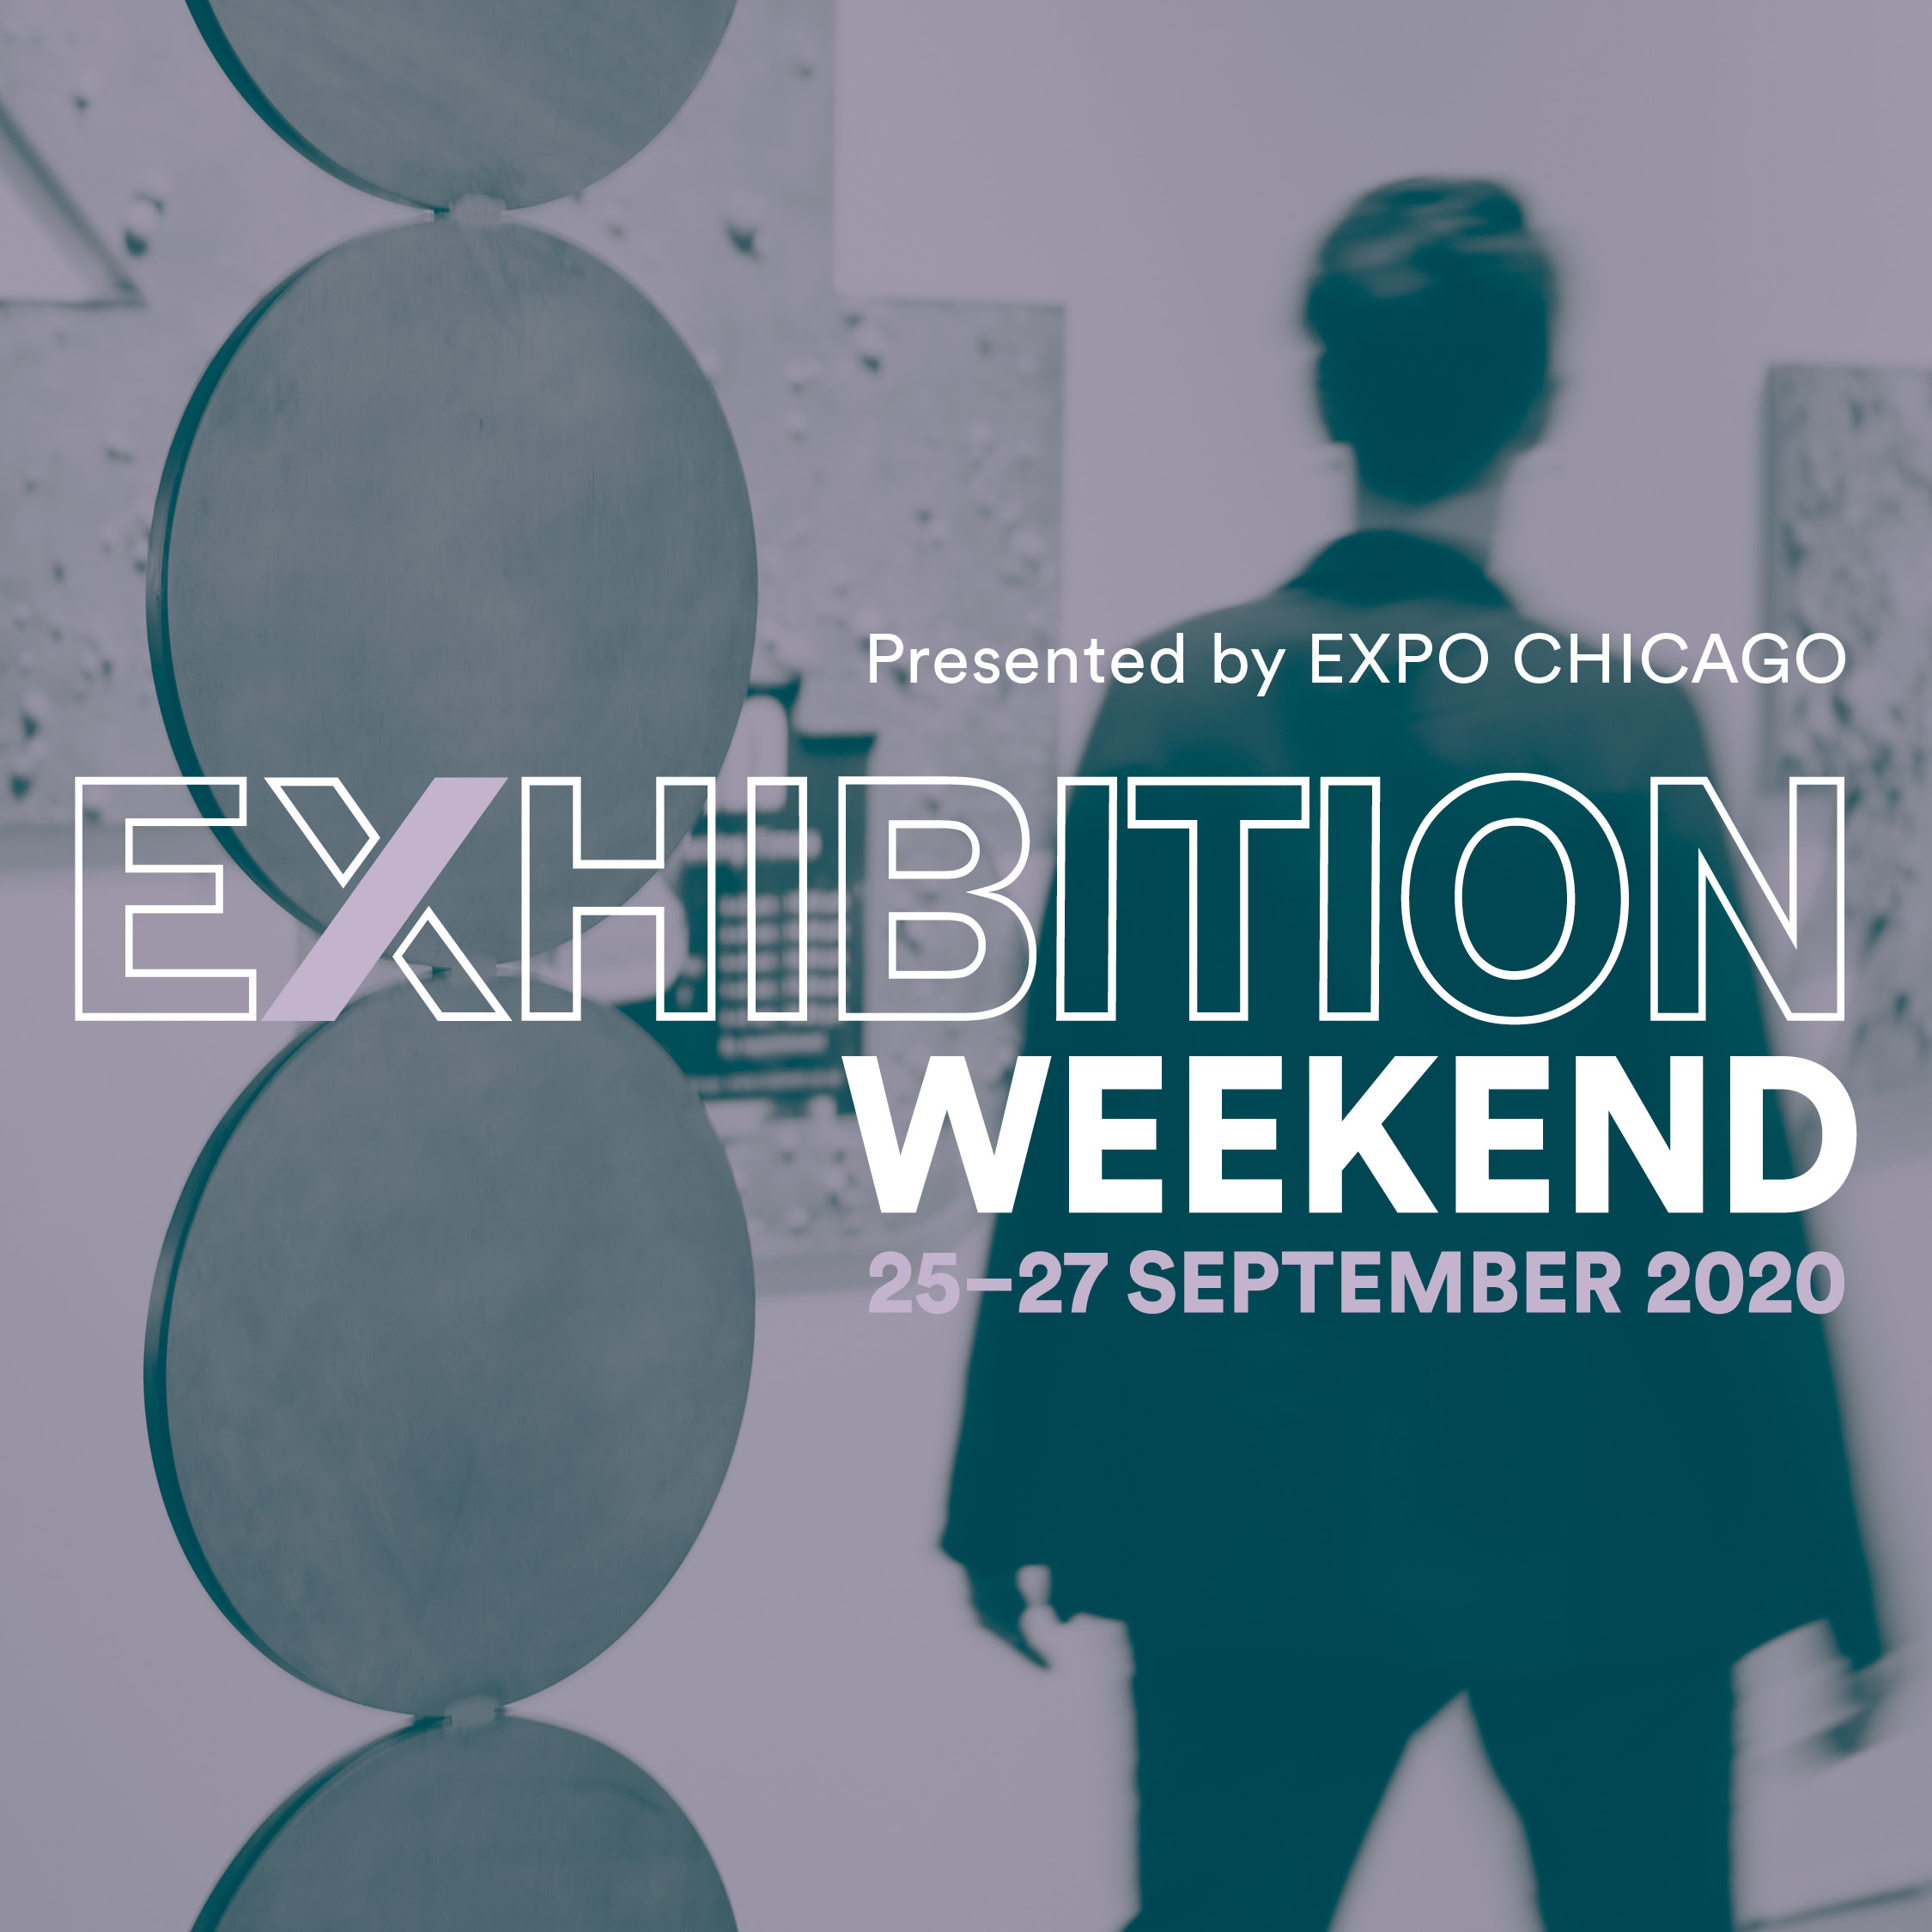 Image: EXPO CHICAGO EXHIBITION Weekend logo